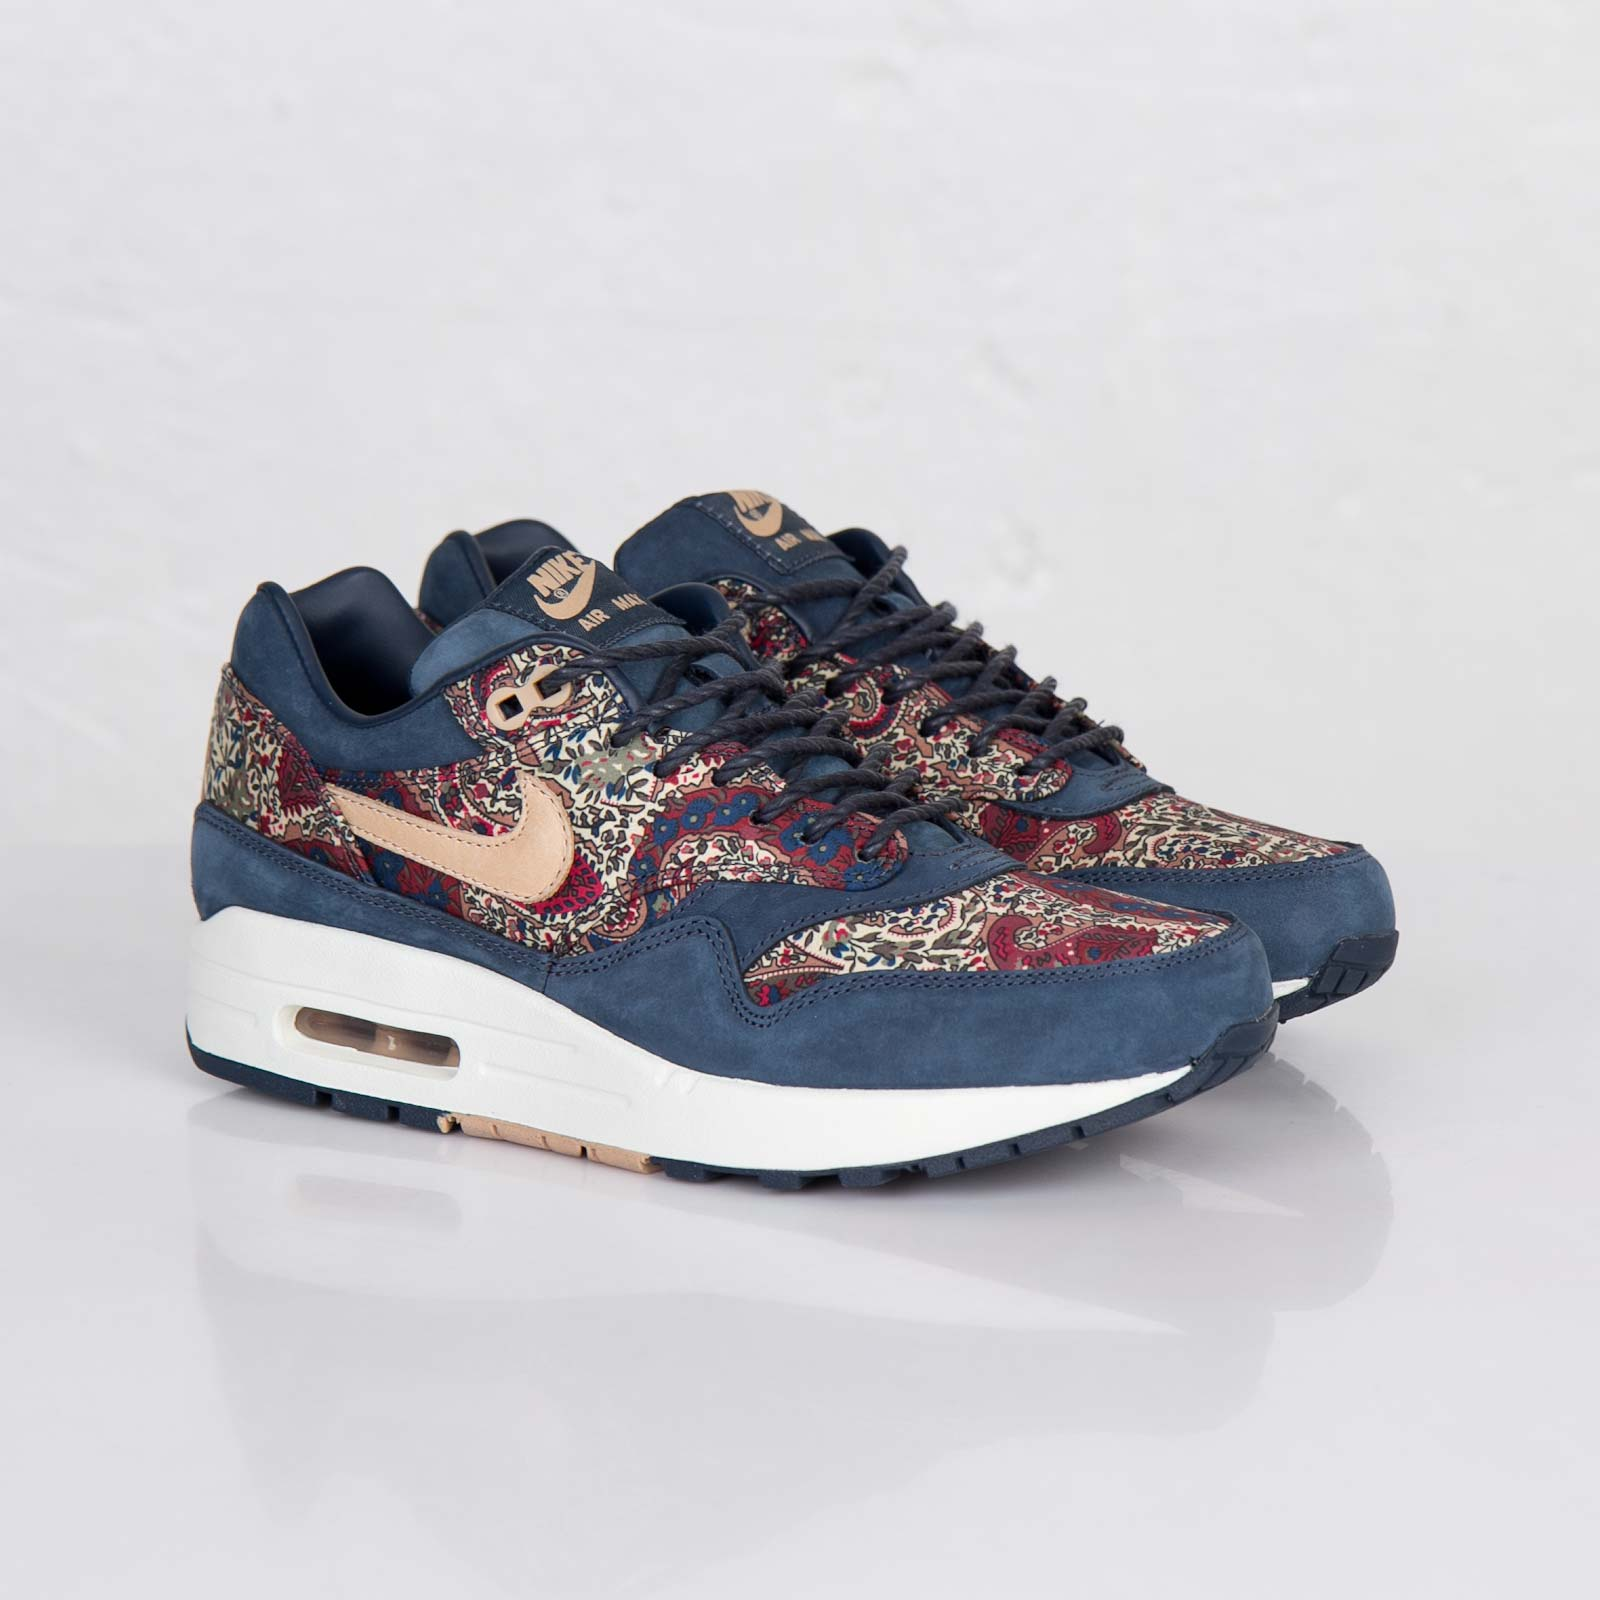 Nike Wmns Air Max 1 Liberty QS 540855 402 Sneakersnstuff